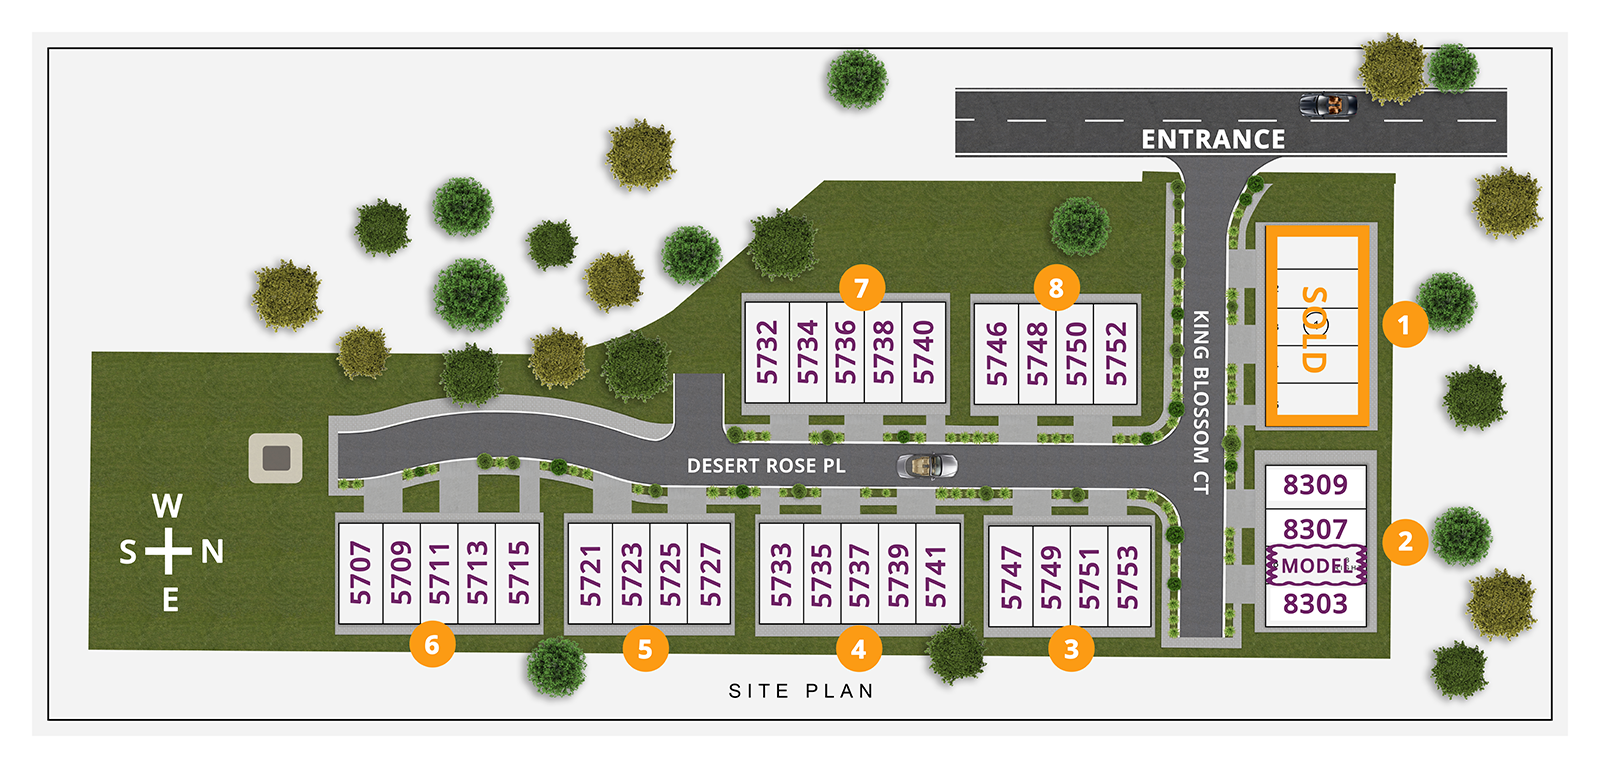 KINGSPORT SITE PLAN updated april 2020